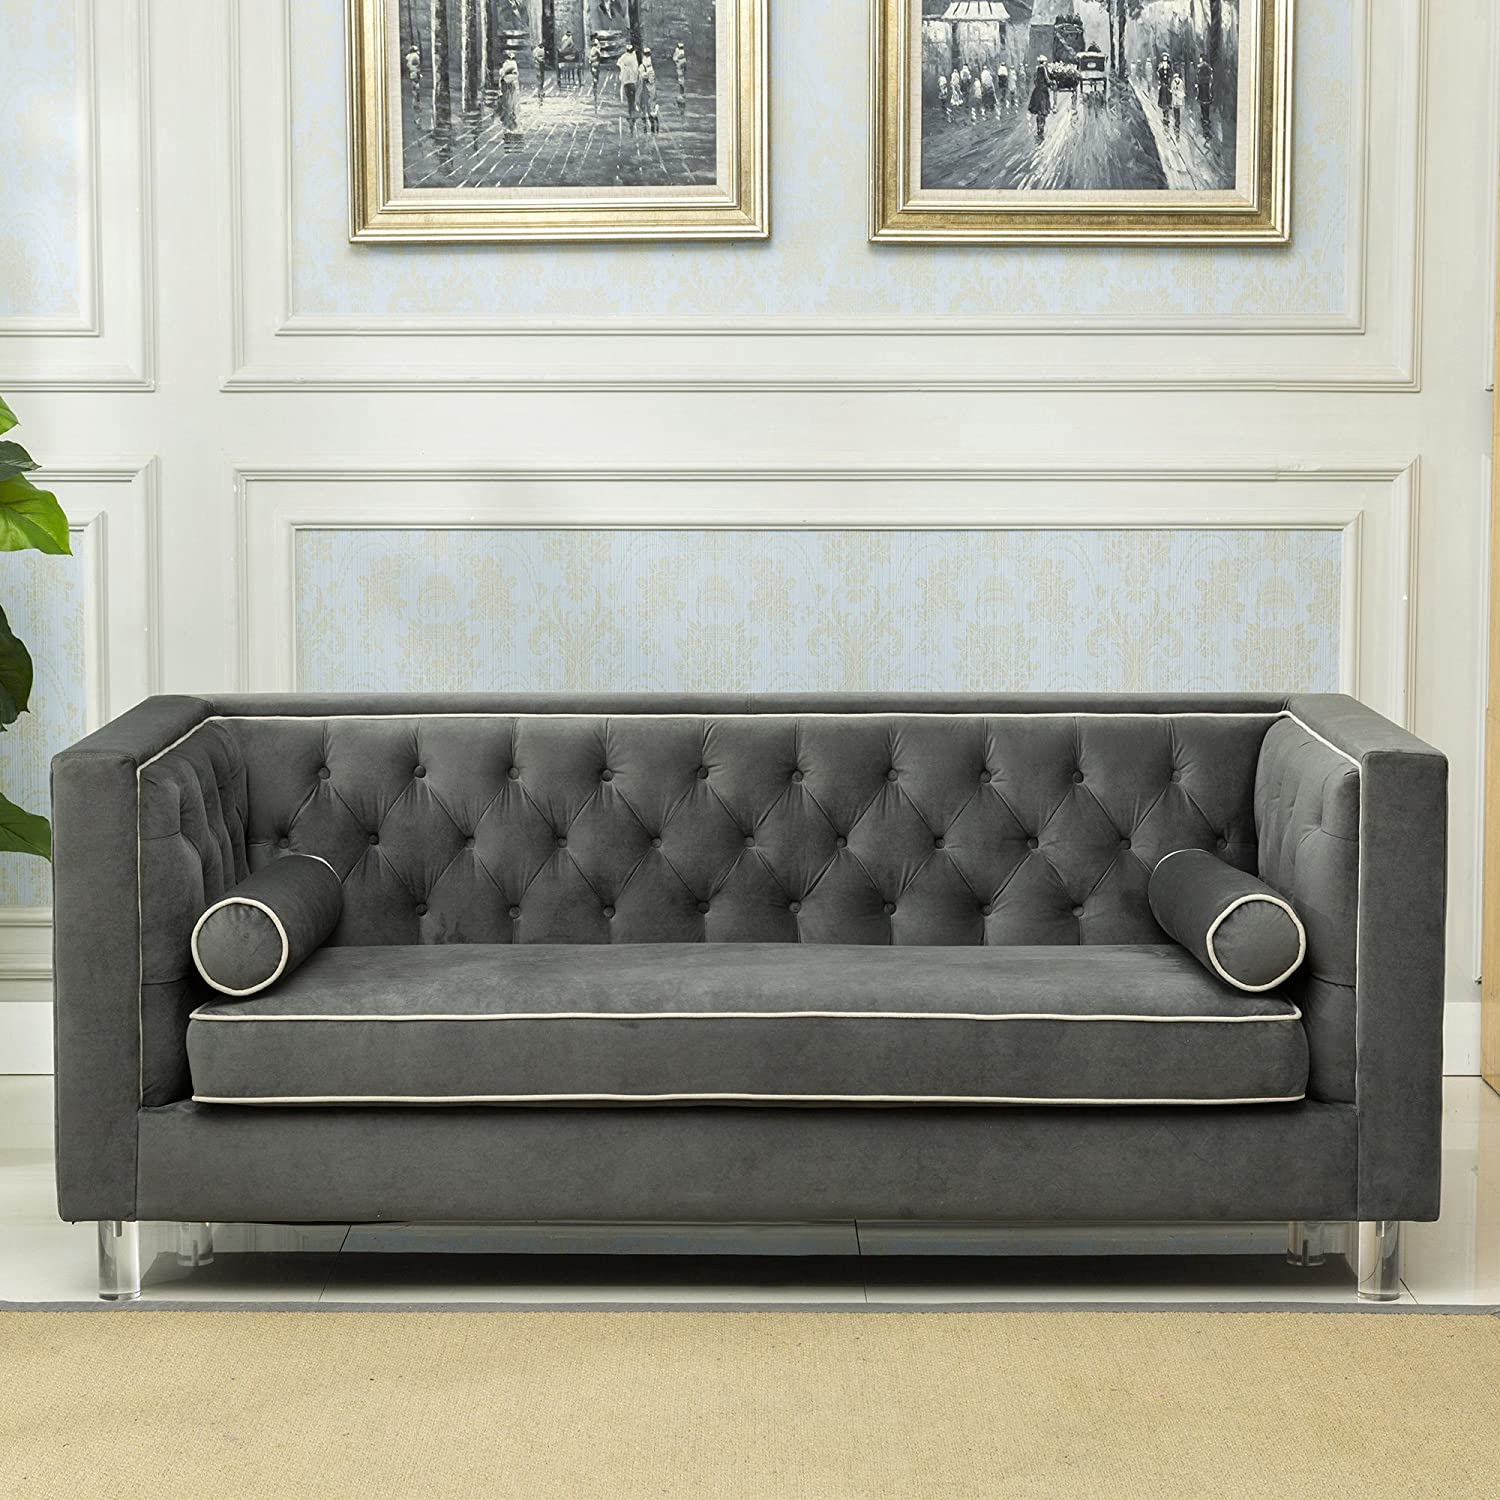 Christies Home Living Victoria Collection Contemporary Polyester Velvet Fabric Upholstered Button Tufted Living Room Tuxedo Sofa